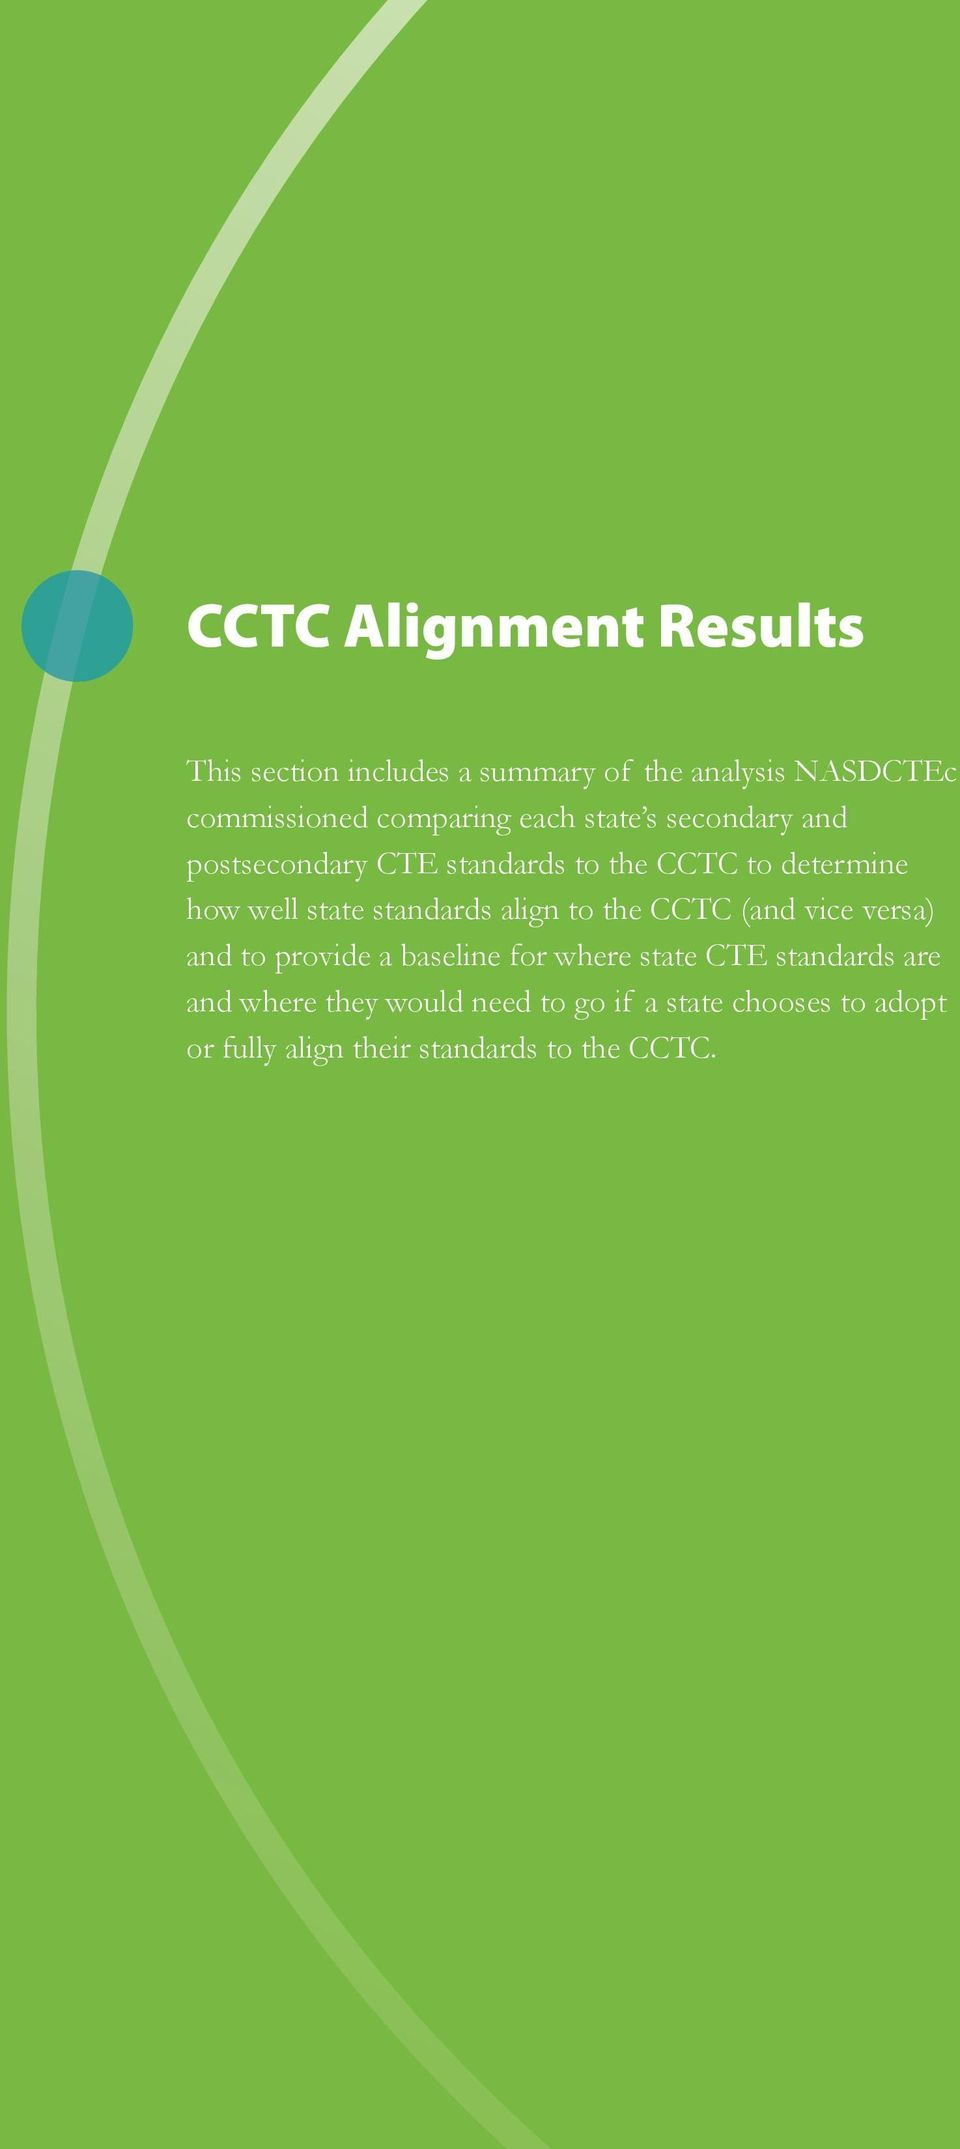 state standards align to the CCTC (and vice versa) and to provide a baseline for where state CTE